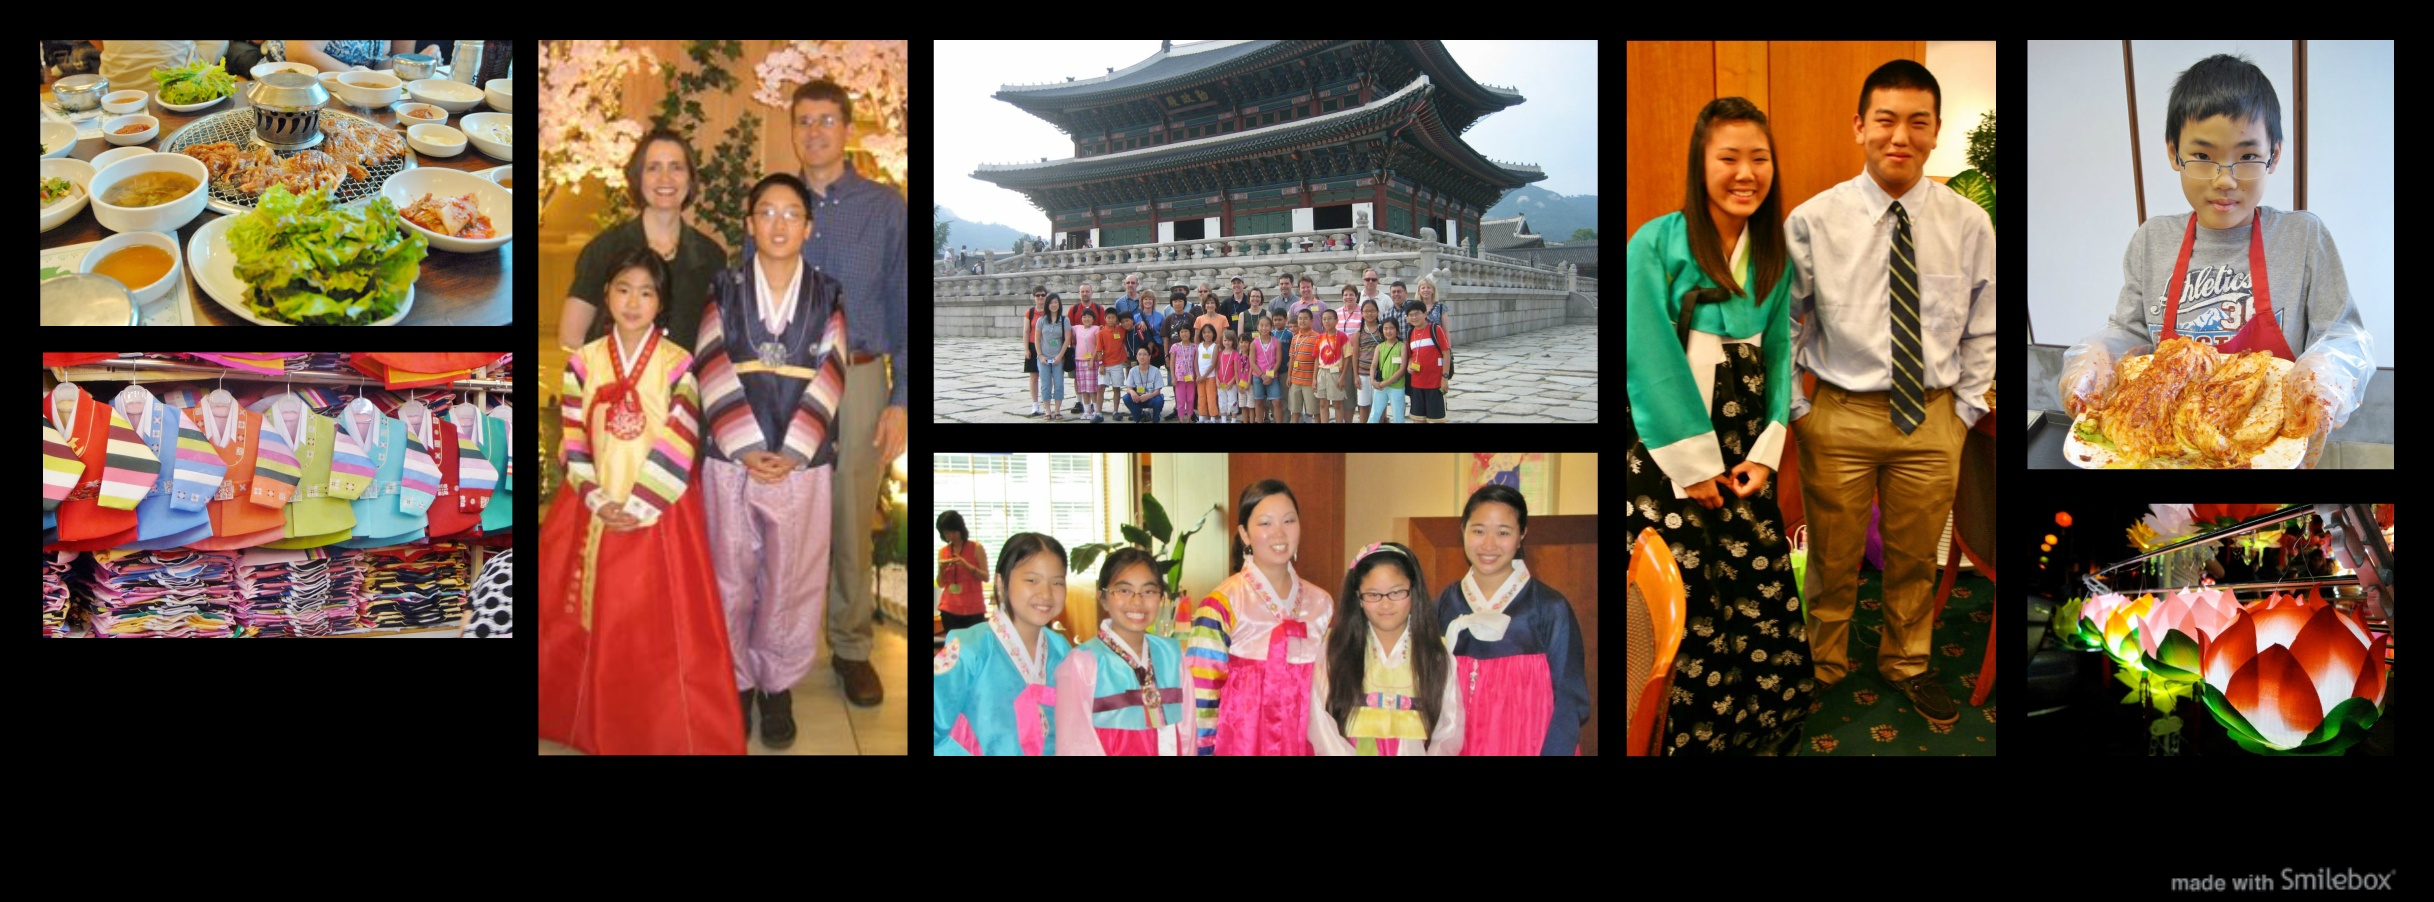 things about Korea   s culture  traditions and food as well asKorean Culture And Traditions